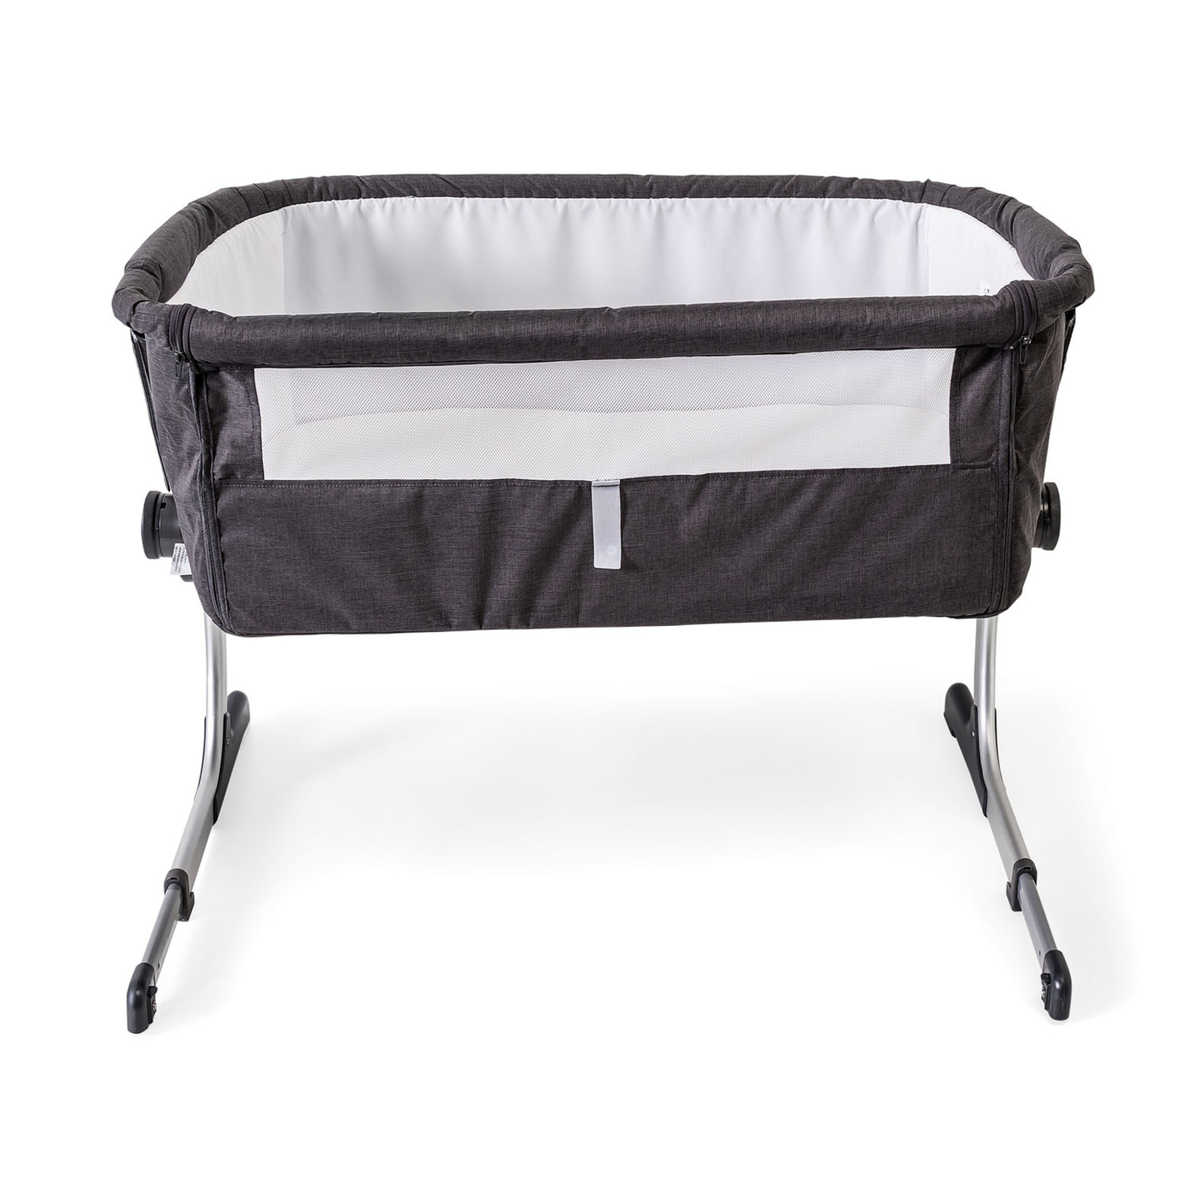 Childcare Cosy Time Sleeper Bassinet